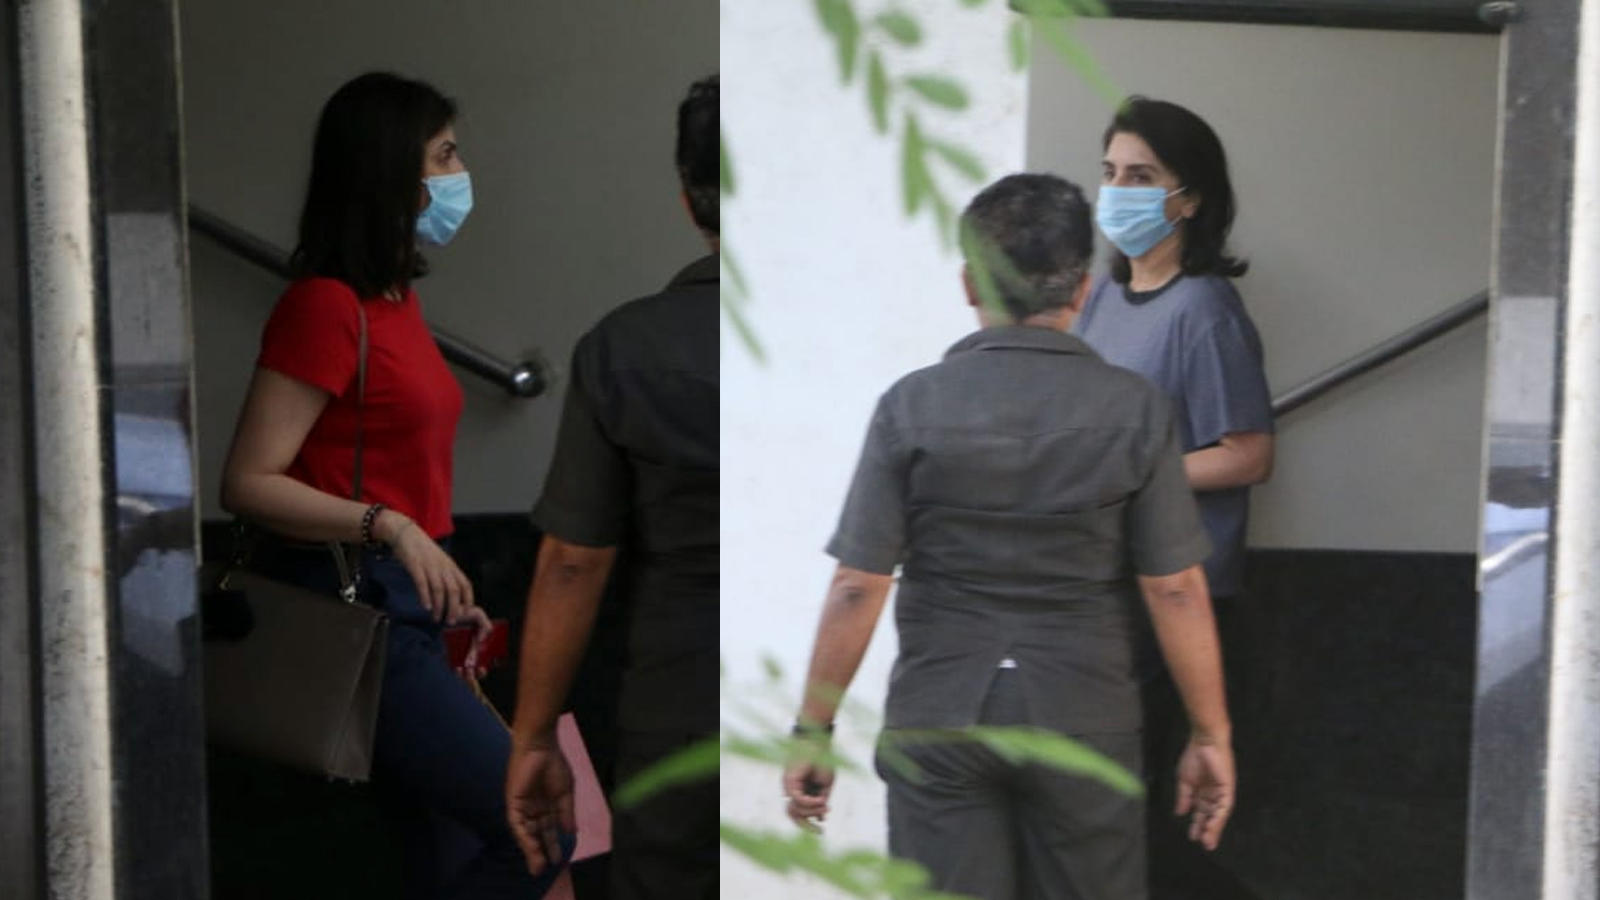 neetu-kapoor-and-riddhima-kapoor-sahni-get-papped-outside-a-clinic-in-mumbai-amid-coronaviurus-pandemic